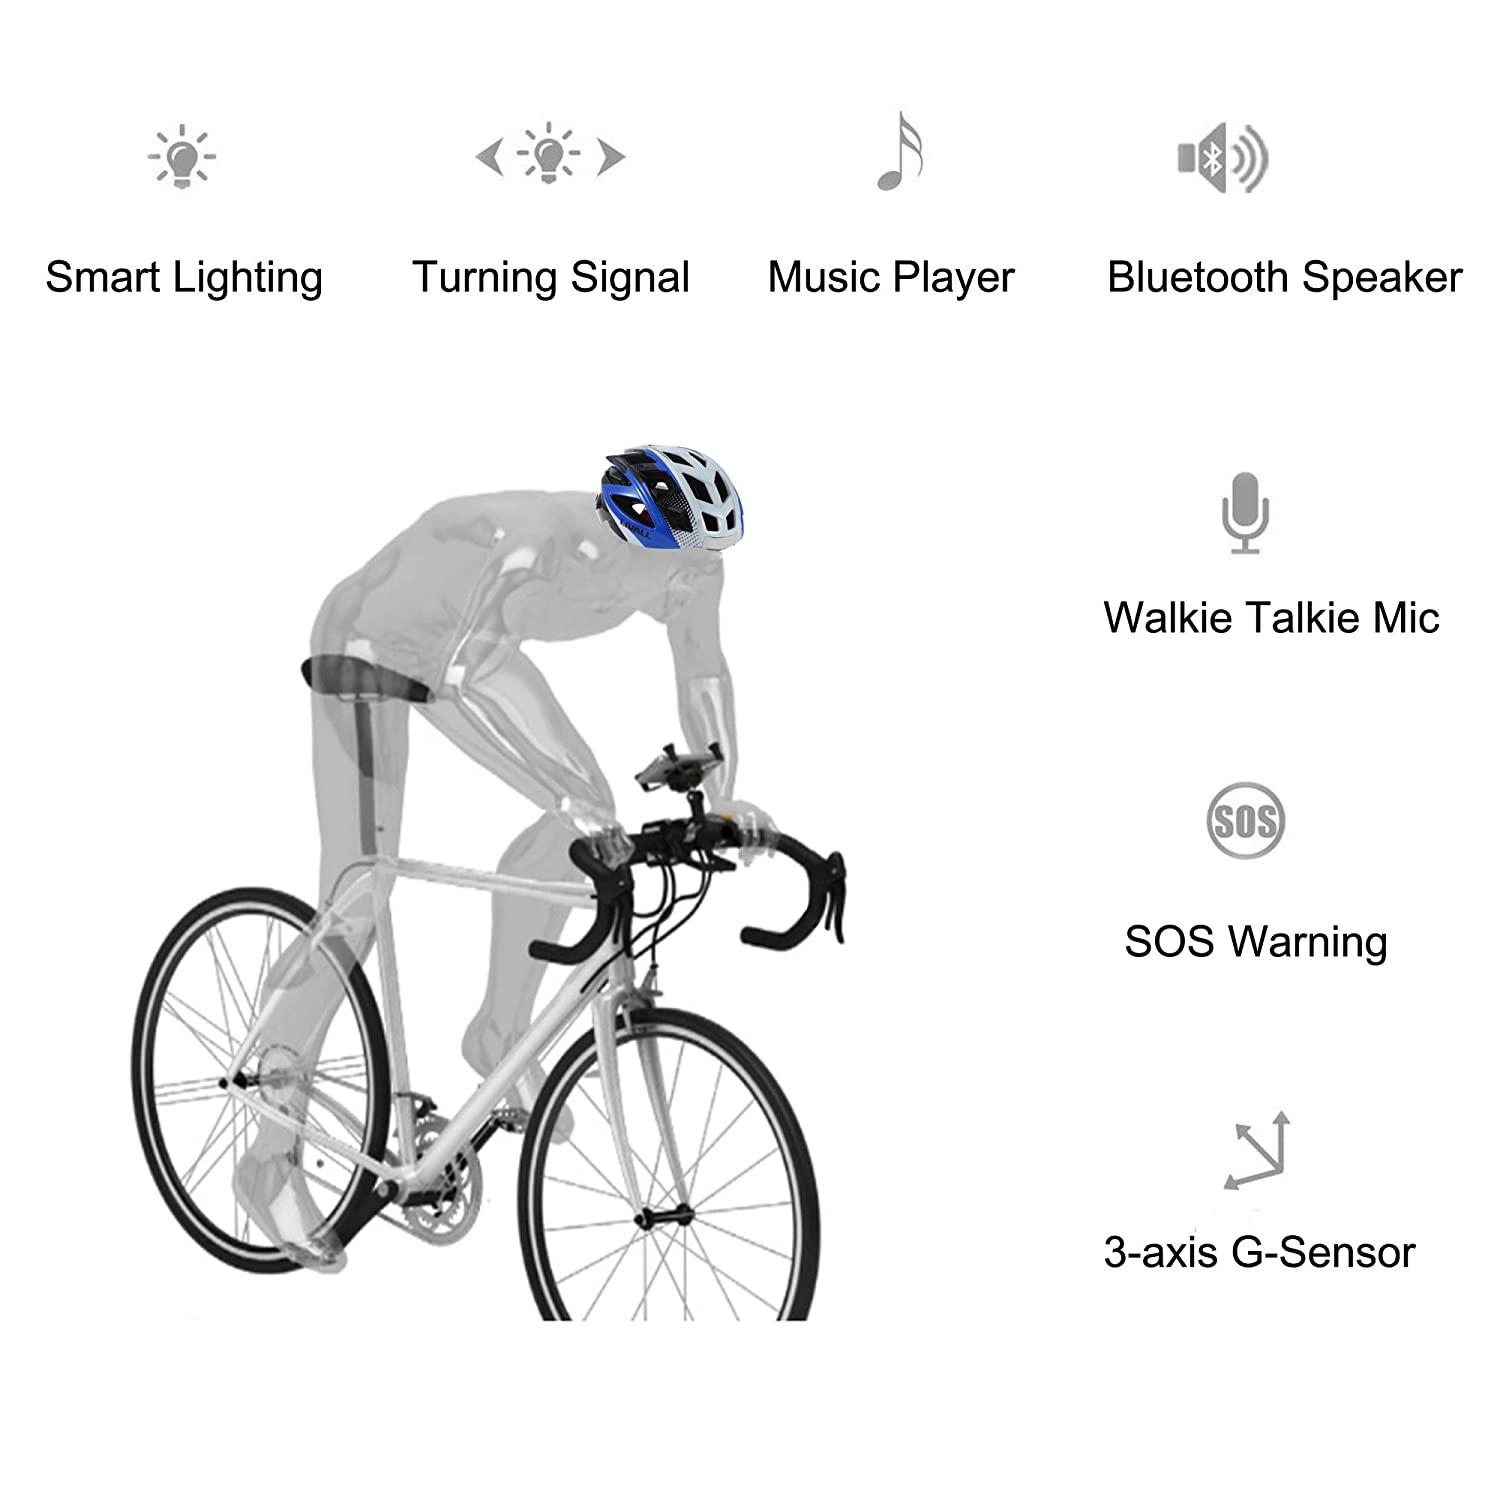 amazoncom livall smart bike helmet usb rechargeable bluetooth bicycle helmet tail light with turn signals hands free call walkie talkie music player